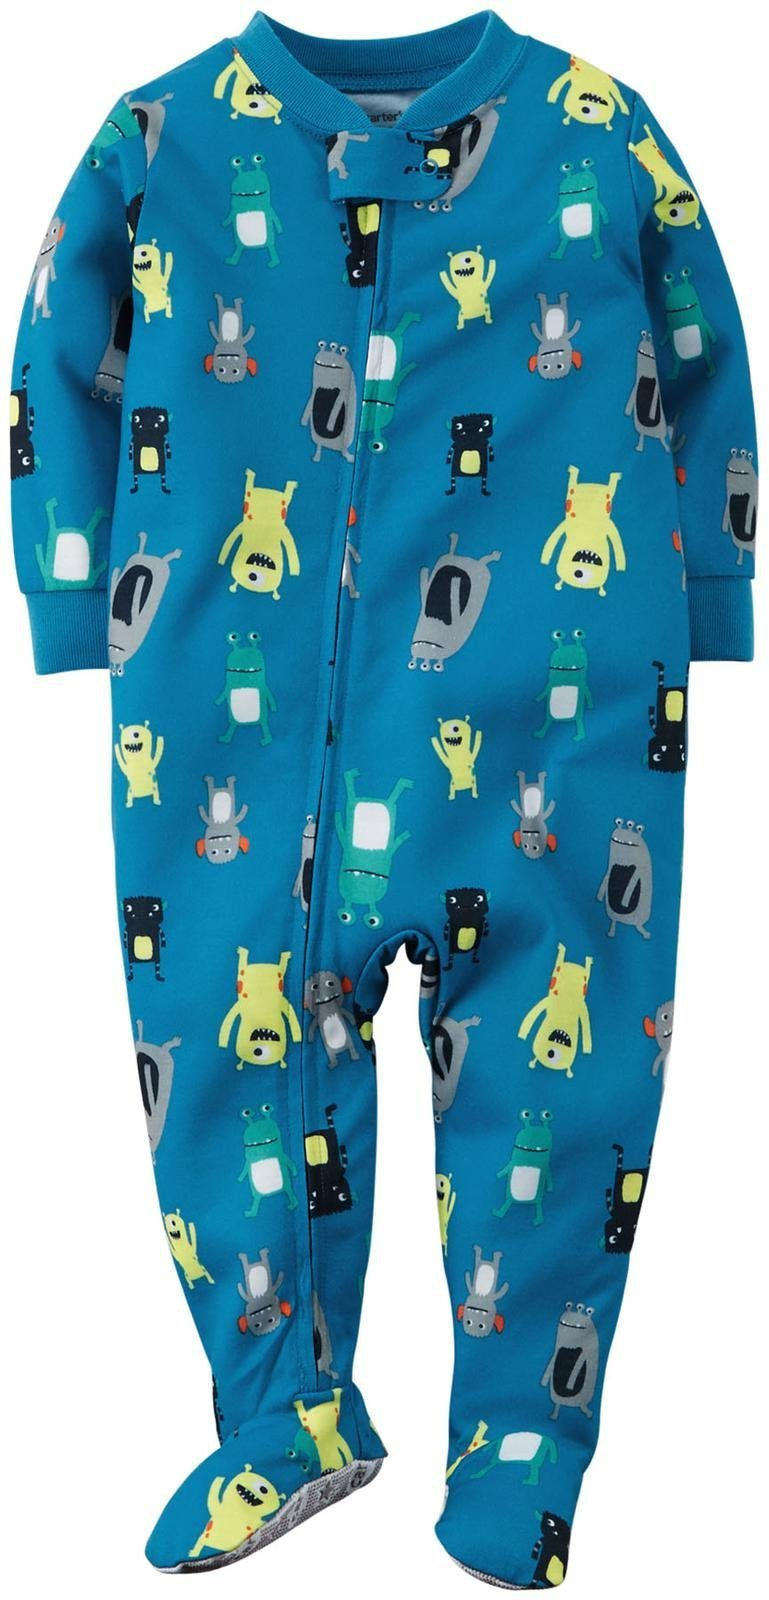 Carter's Little Boys' Print Footie (Toddler) - Monsters - 5T by Carter's (Image #1)